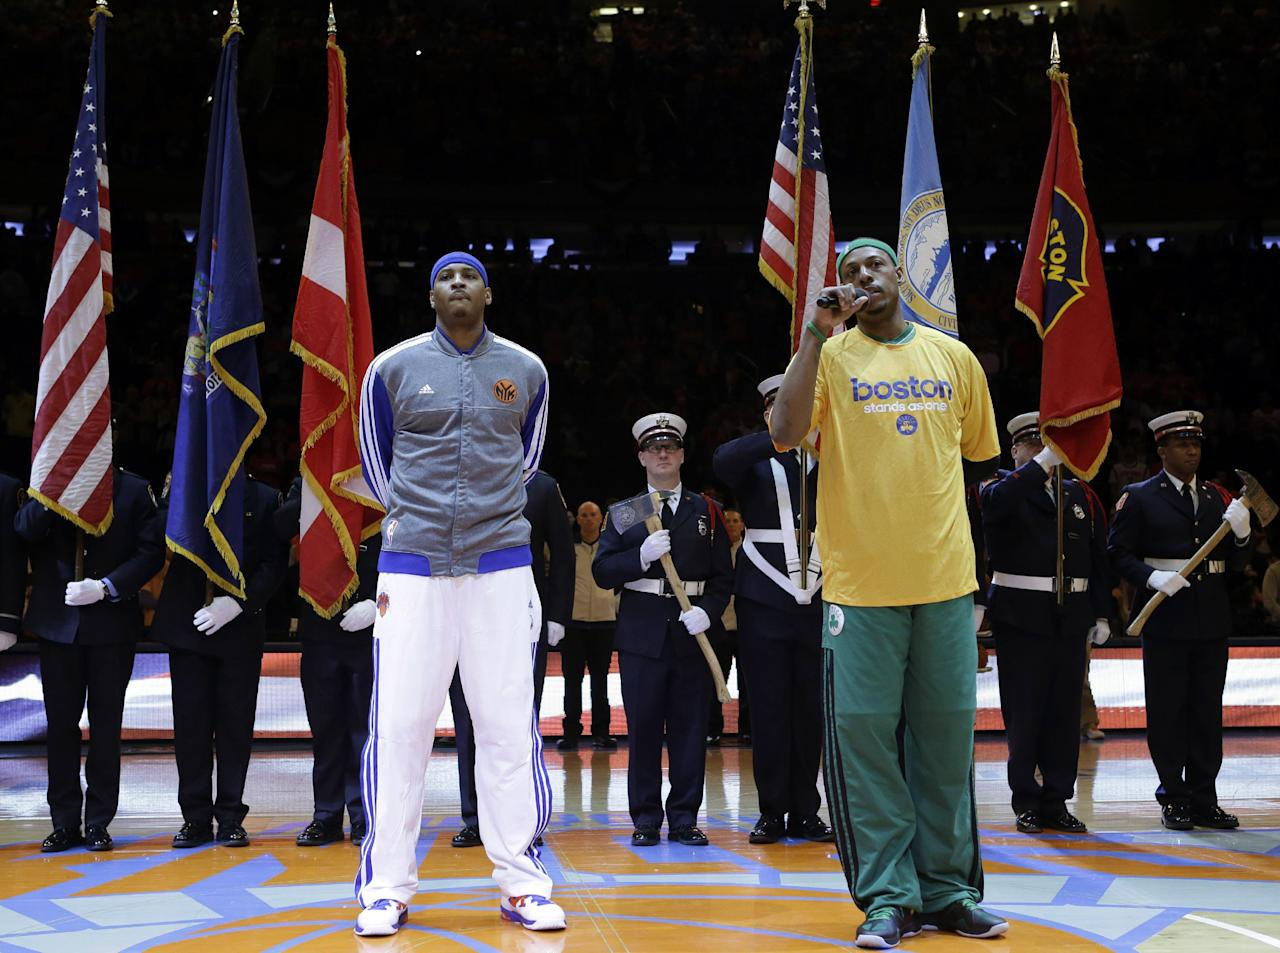 New York Knicks forward Carmelo Anthony, left, listens as Boston Celtics forward Paul Pierce speaks about the Boston Marathon bombings in front of color guards from New York and Boston before Game 1 in the first round of the NBA basketball playoffs at Madison Square Garden in New York, Saturday, April 20, 2013. (AP Photo/Kathy Willens)